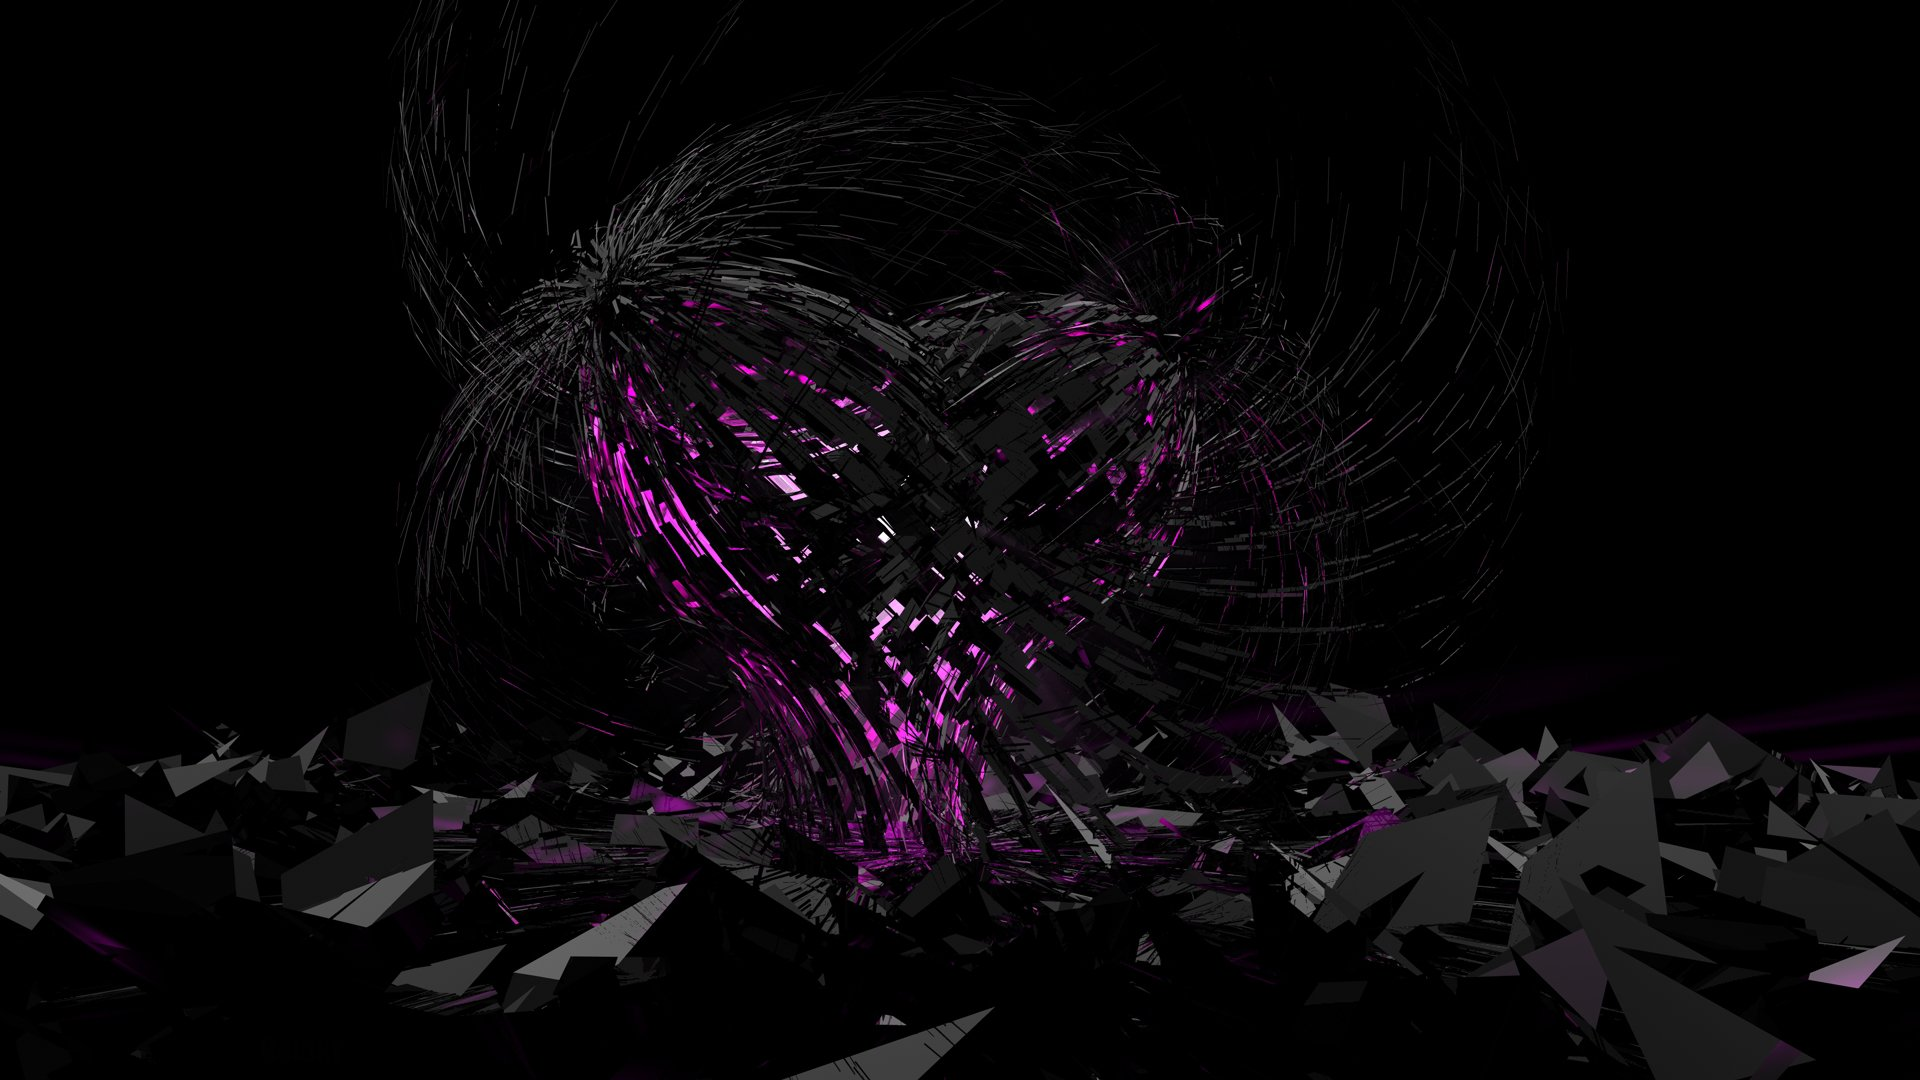 Artistic - Abstract  3D Digital Art CGI Heart Dark Black Purple Wallpaper